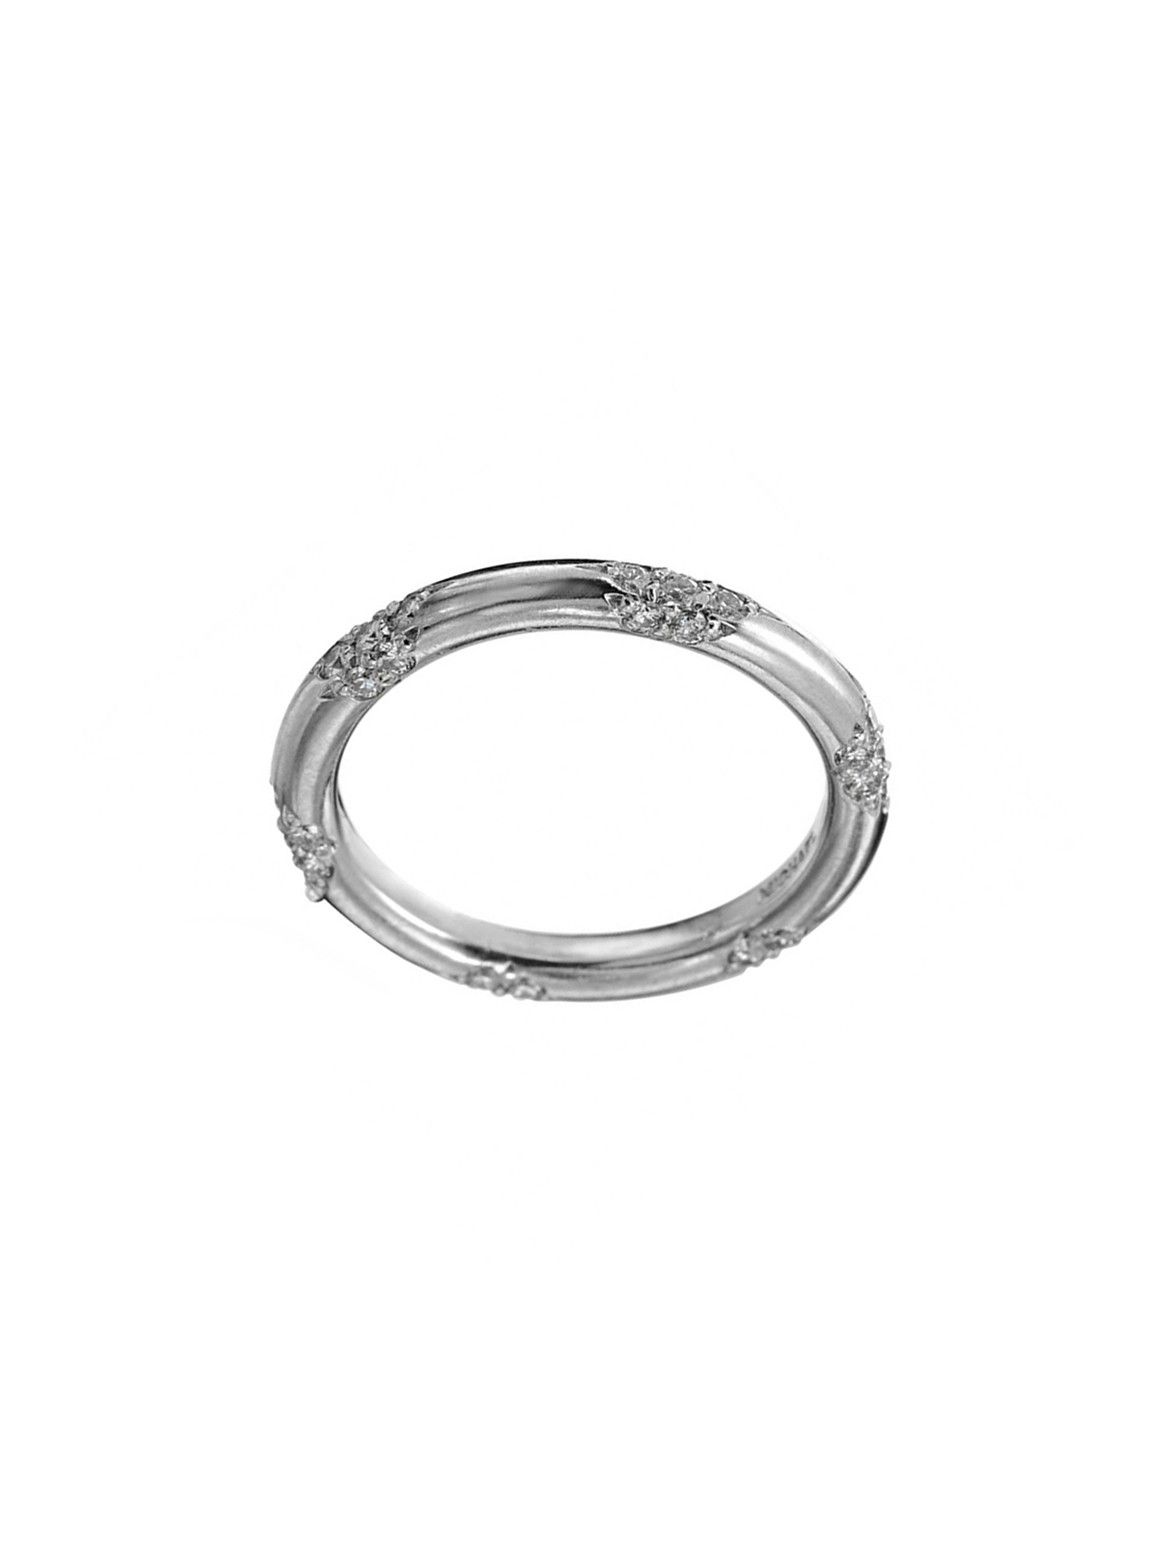 Michael B Platinum Pee Crown Lace Wedding Band So Simple And Perfect